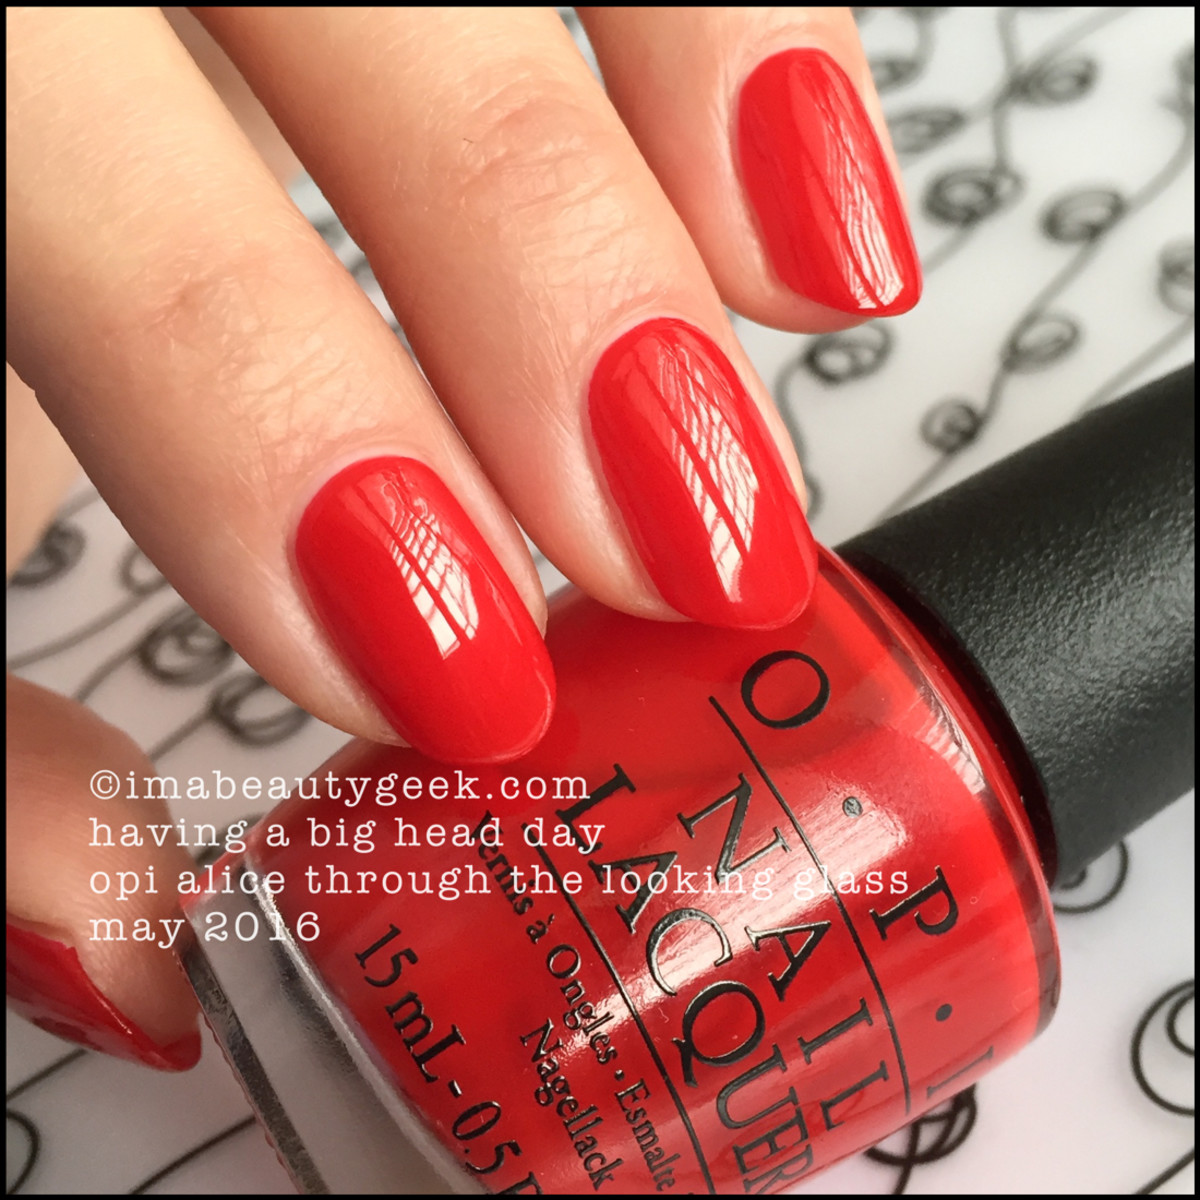 OPI Having a Big Head Day_OPI Alice Through the Looking Glass Swatches 2016